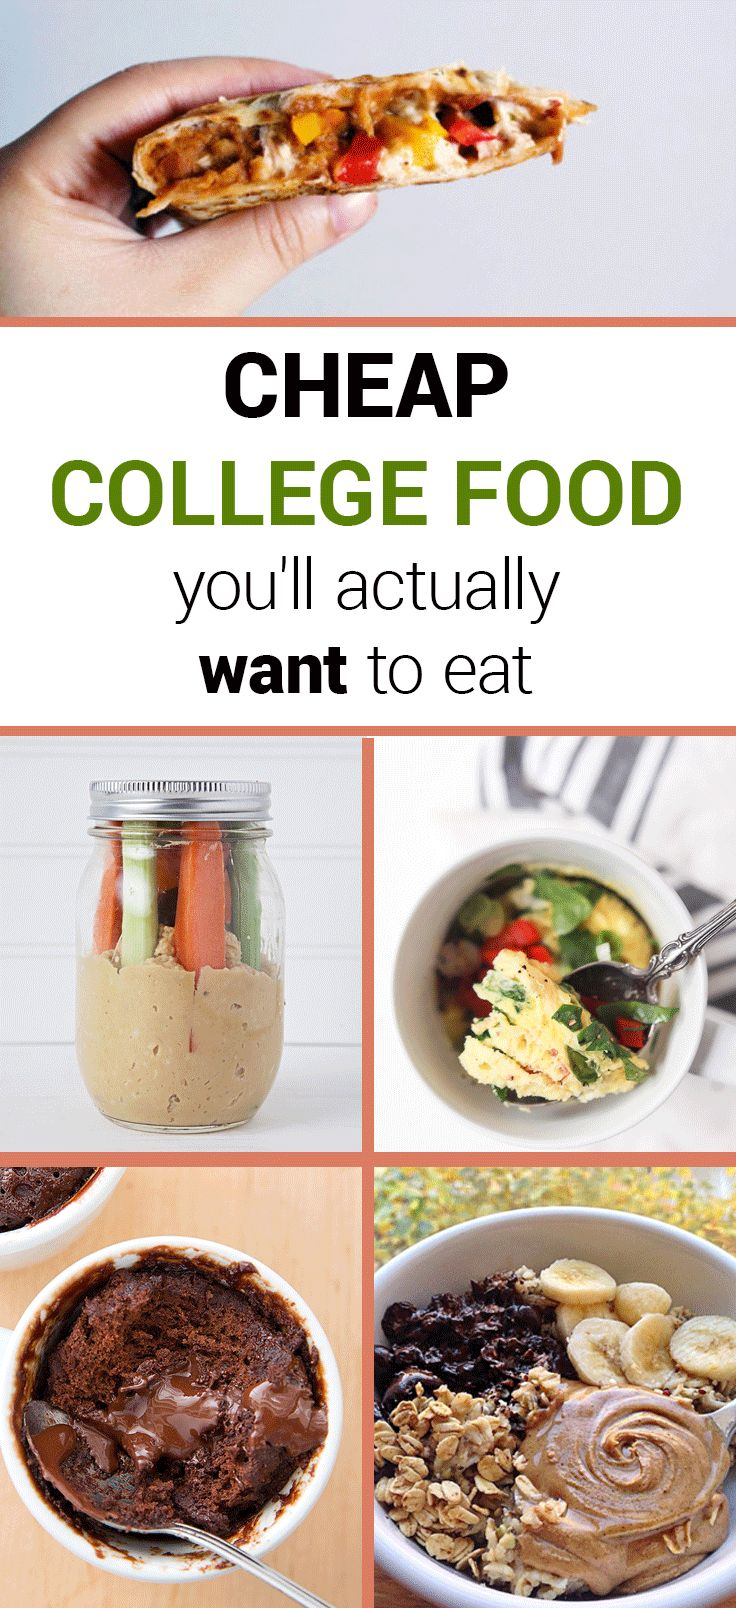 Cheap College Food You'll Actually Want To Eat